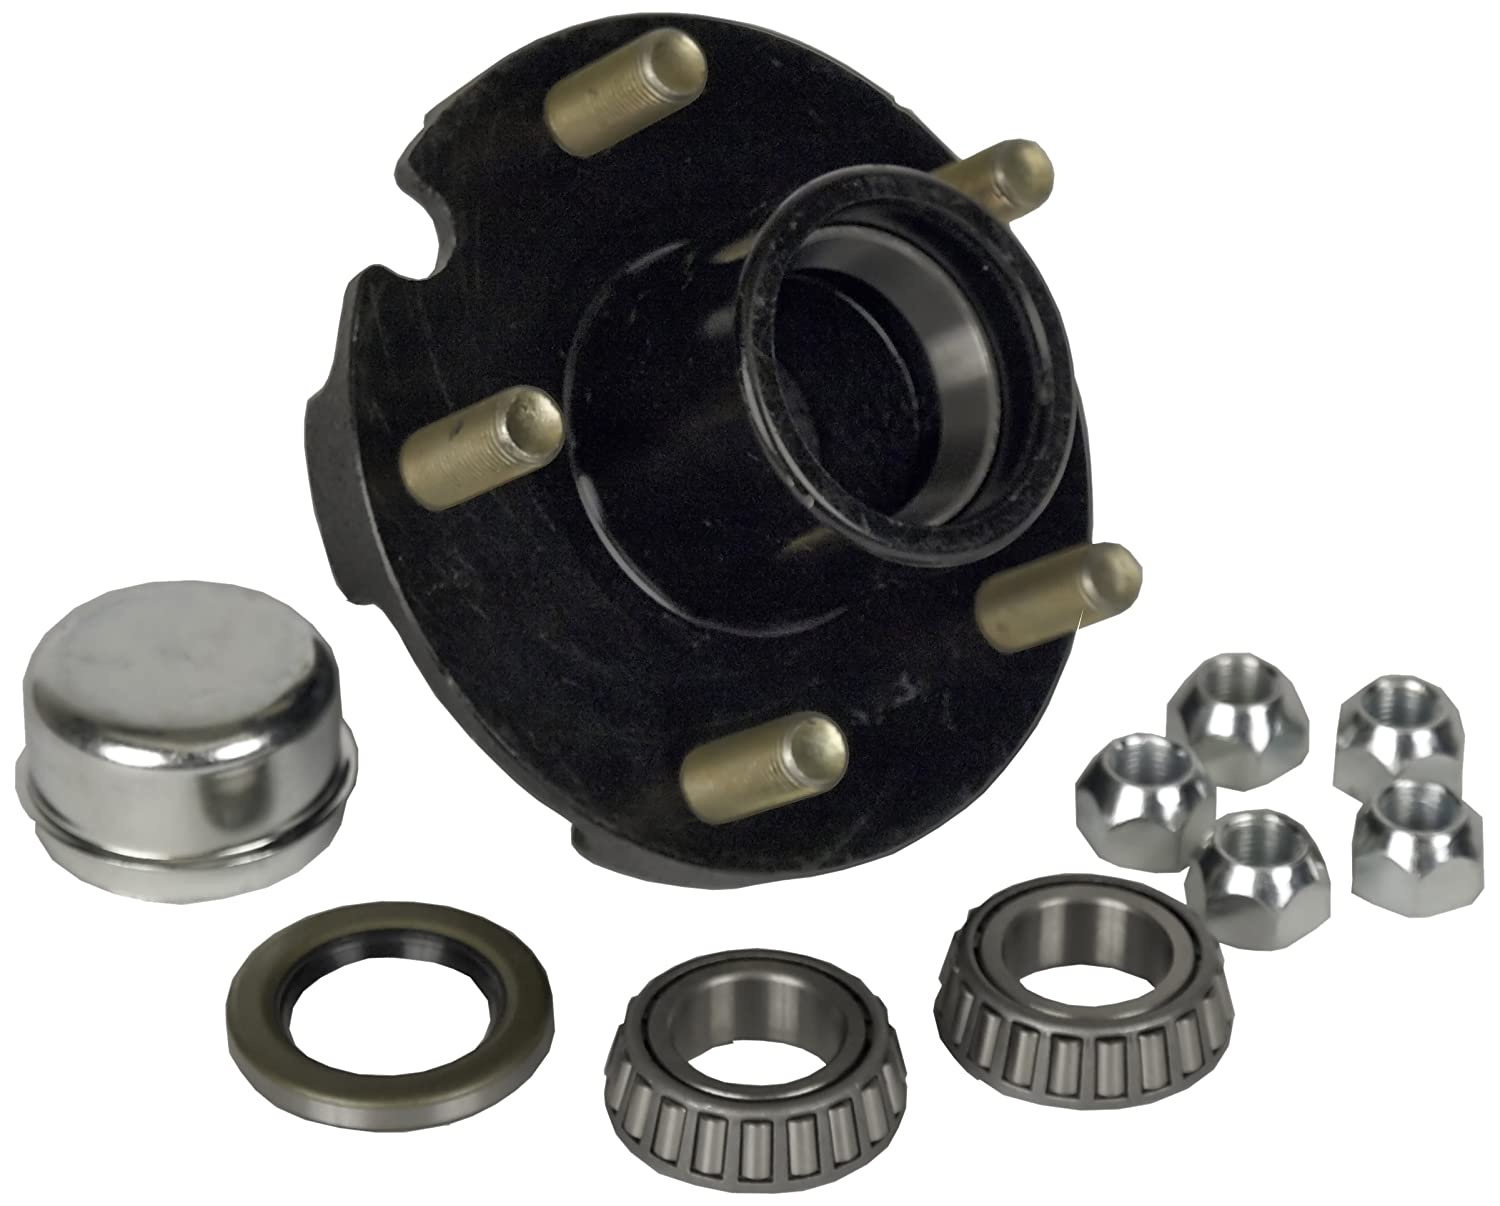 Martin Wheel (H-545UHI-B) 5-Bolt Hub Repair Kit for